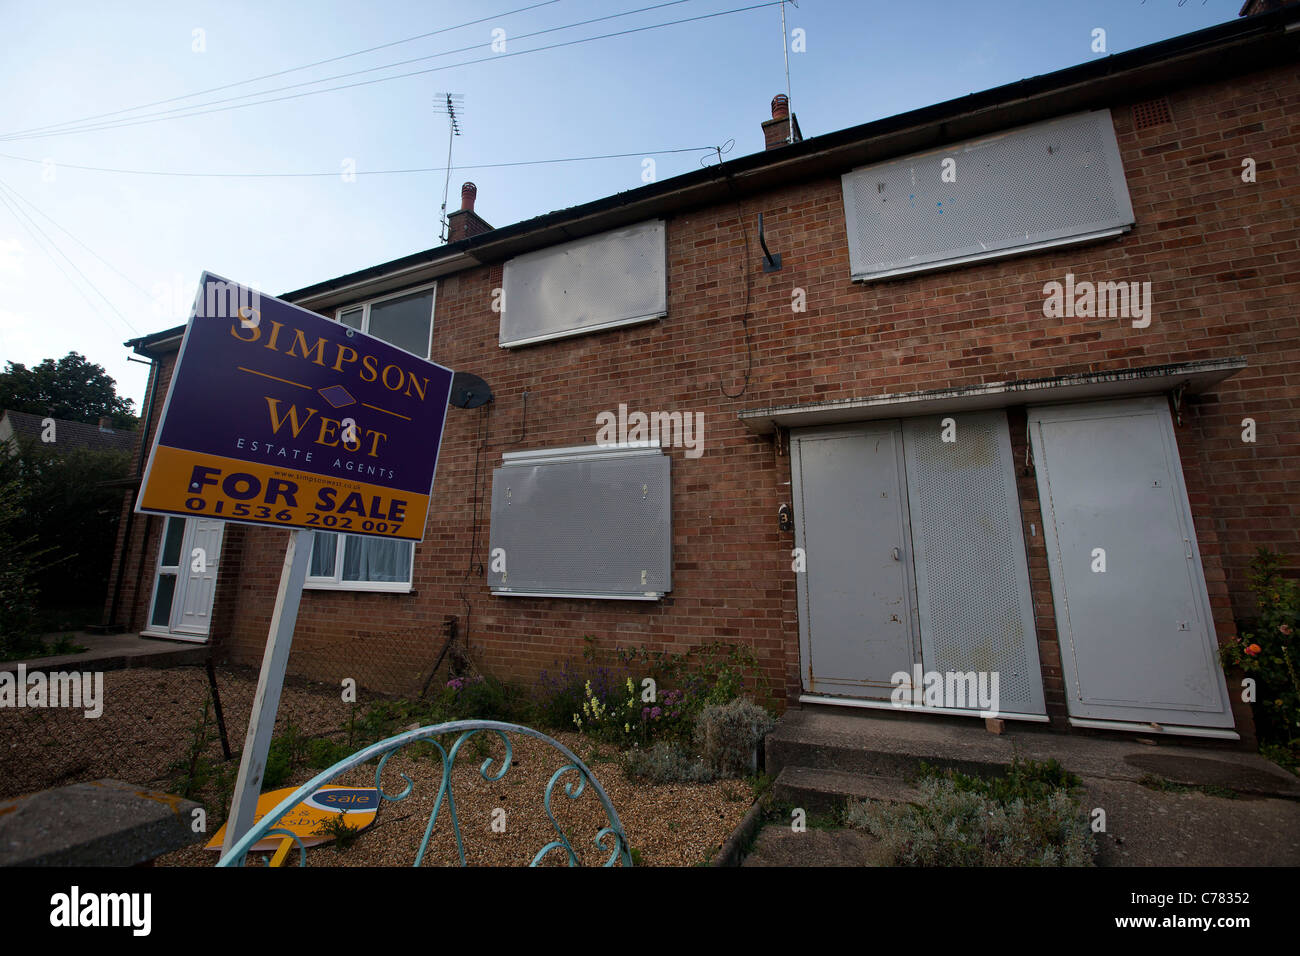 repossessed house for sale in corby Northamptonshire - Stock Image